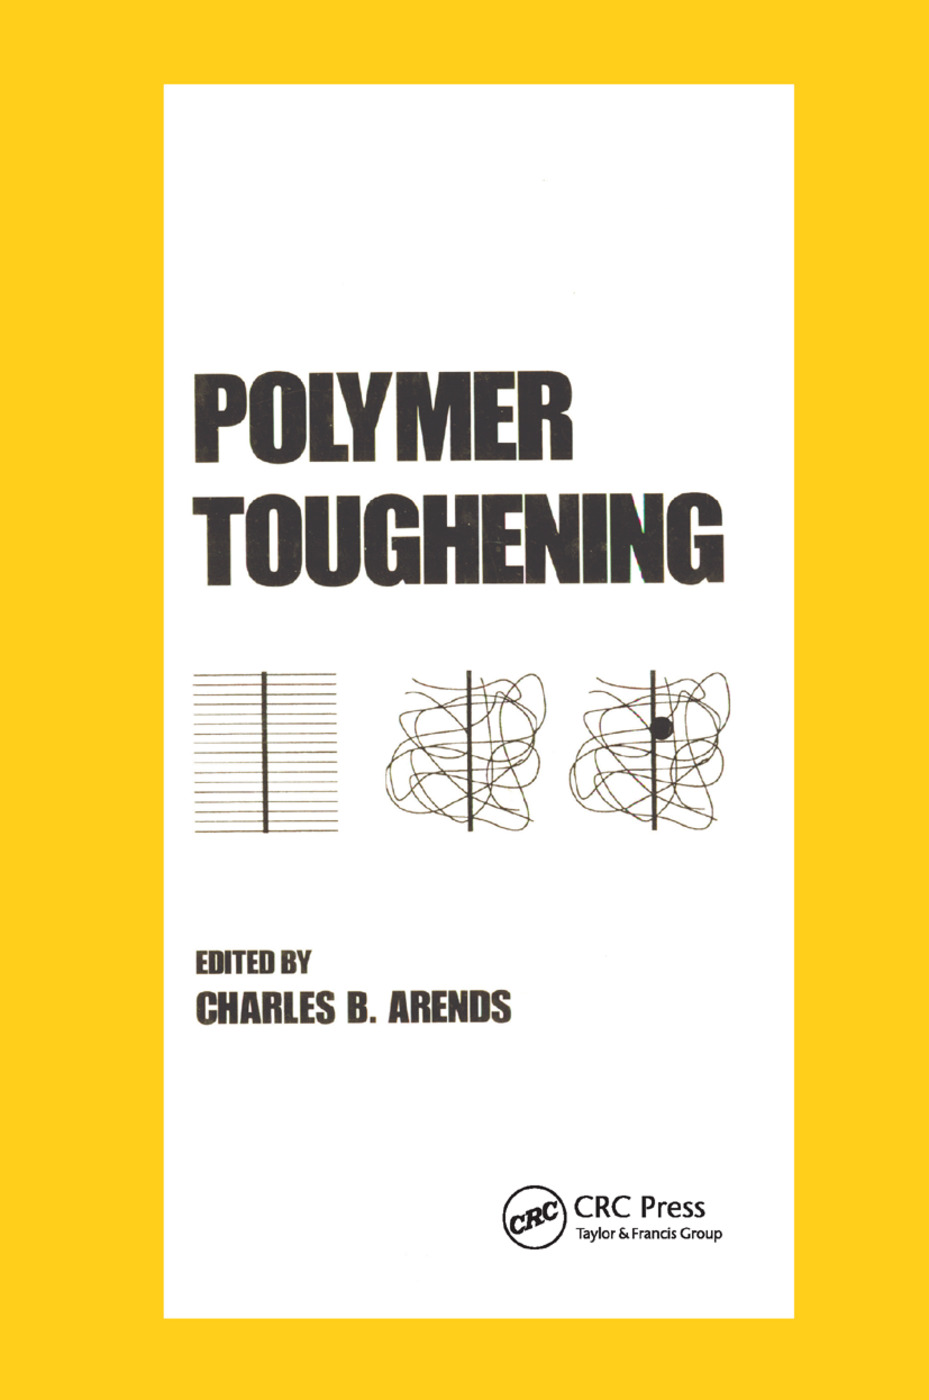 Polymer Toughening book cover